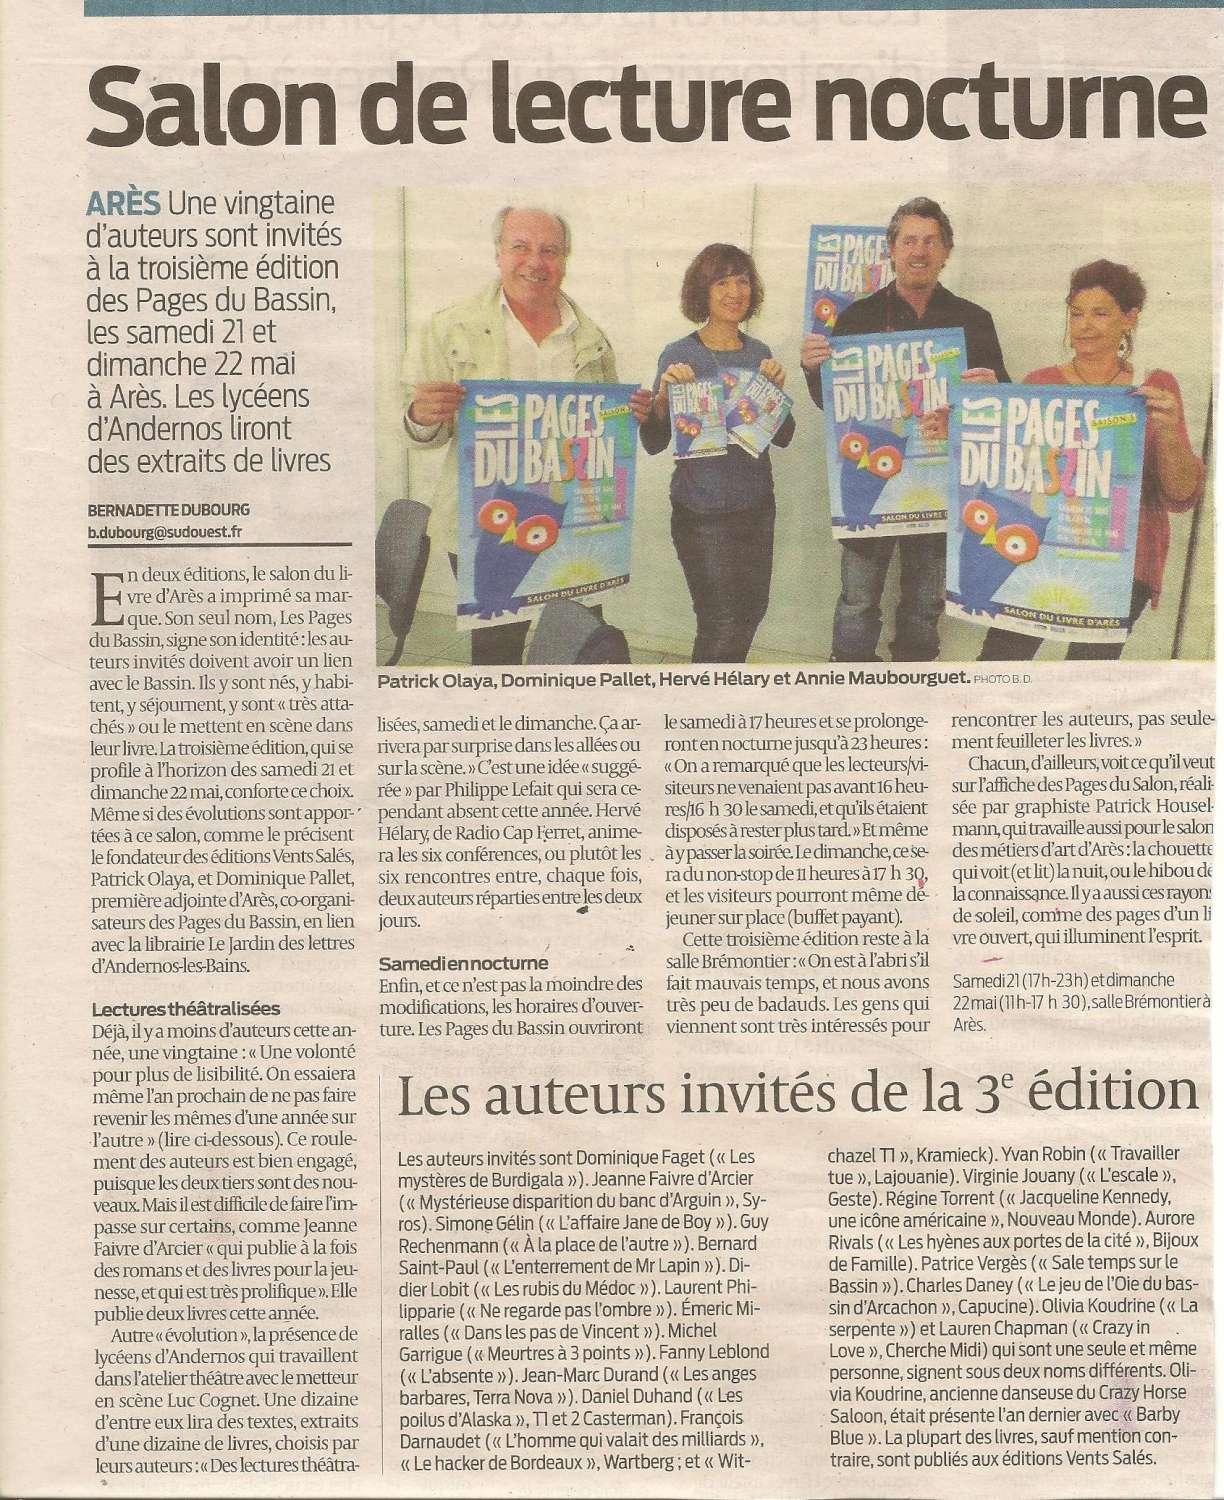 article_sud_ouest_salon_ares_001-1500